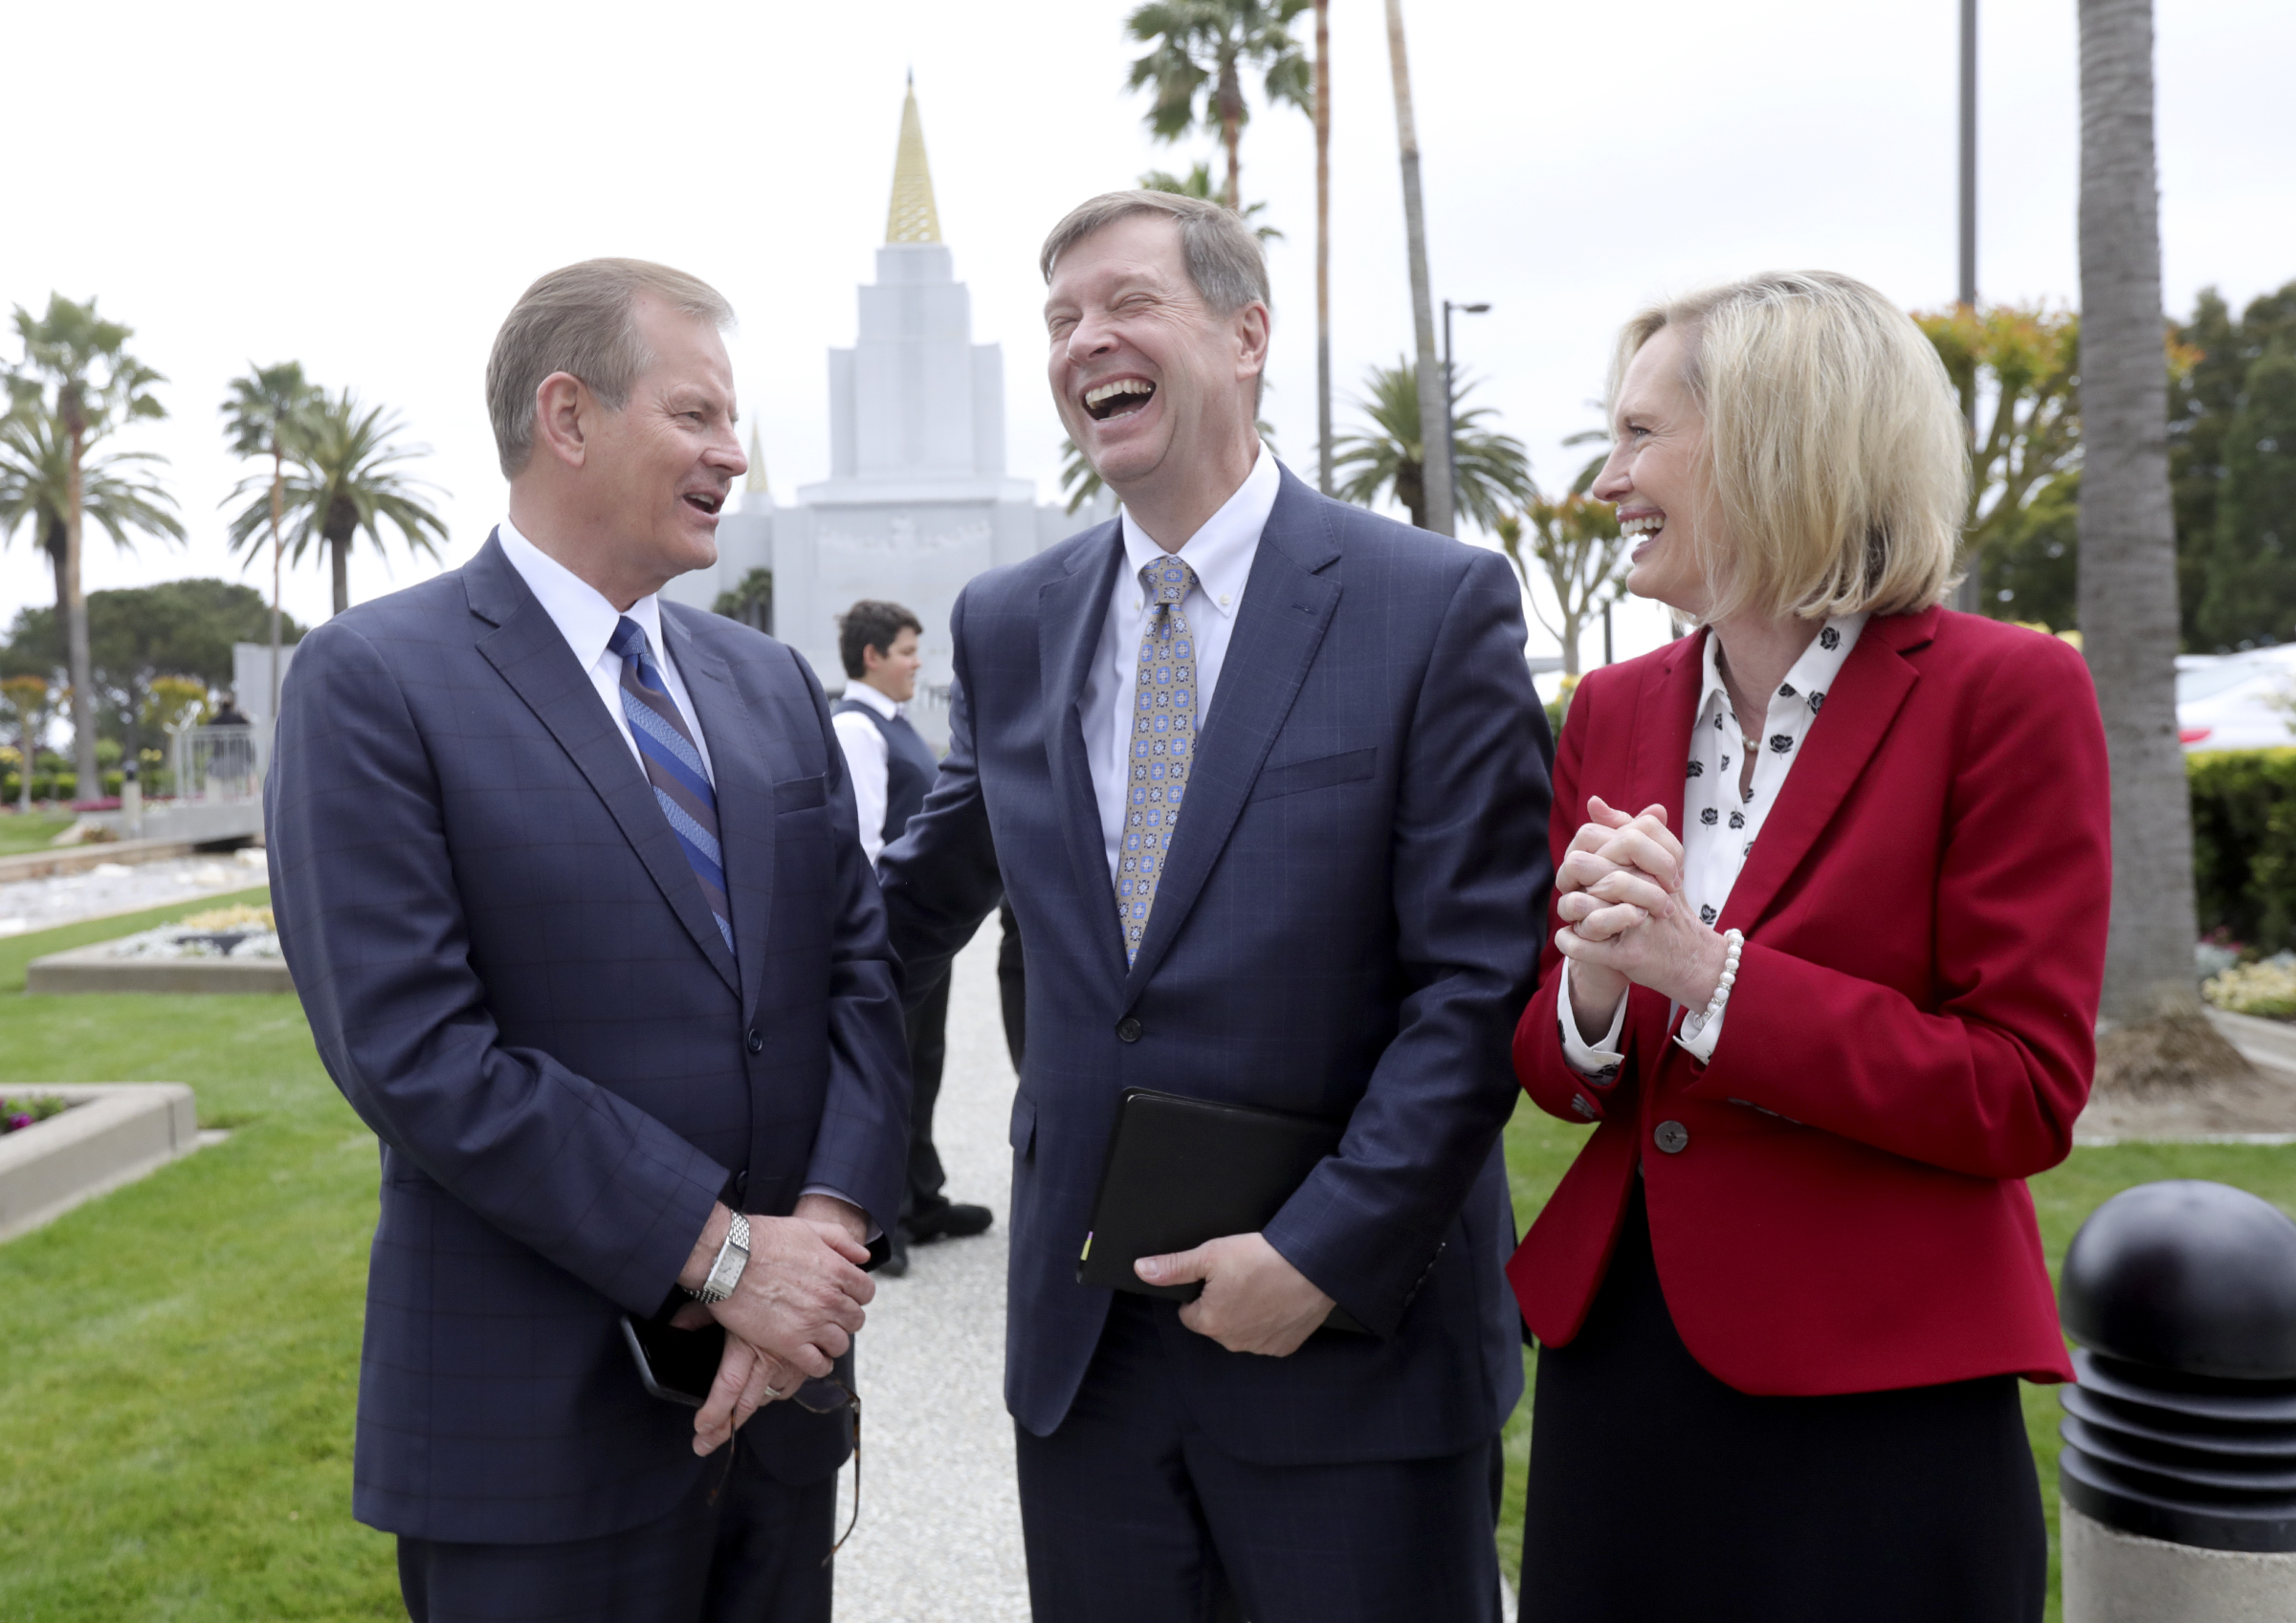 Elder Gary E. Stevenson, left, of the Quorum of the Twelve Apostles, Derek Cordon, and Sister Bonnie H. Cordon, Young Women general president, chat outside of the newly renovated Oakland California Temple, of The Church of Jesus Christ of Latter-day Saints, in Oakland, Calif., on Monday, May 6, 2019.